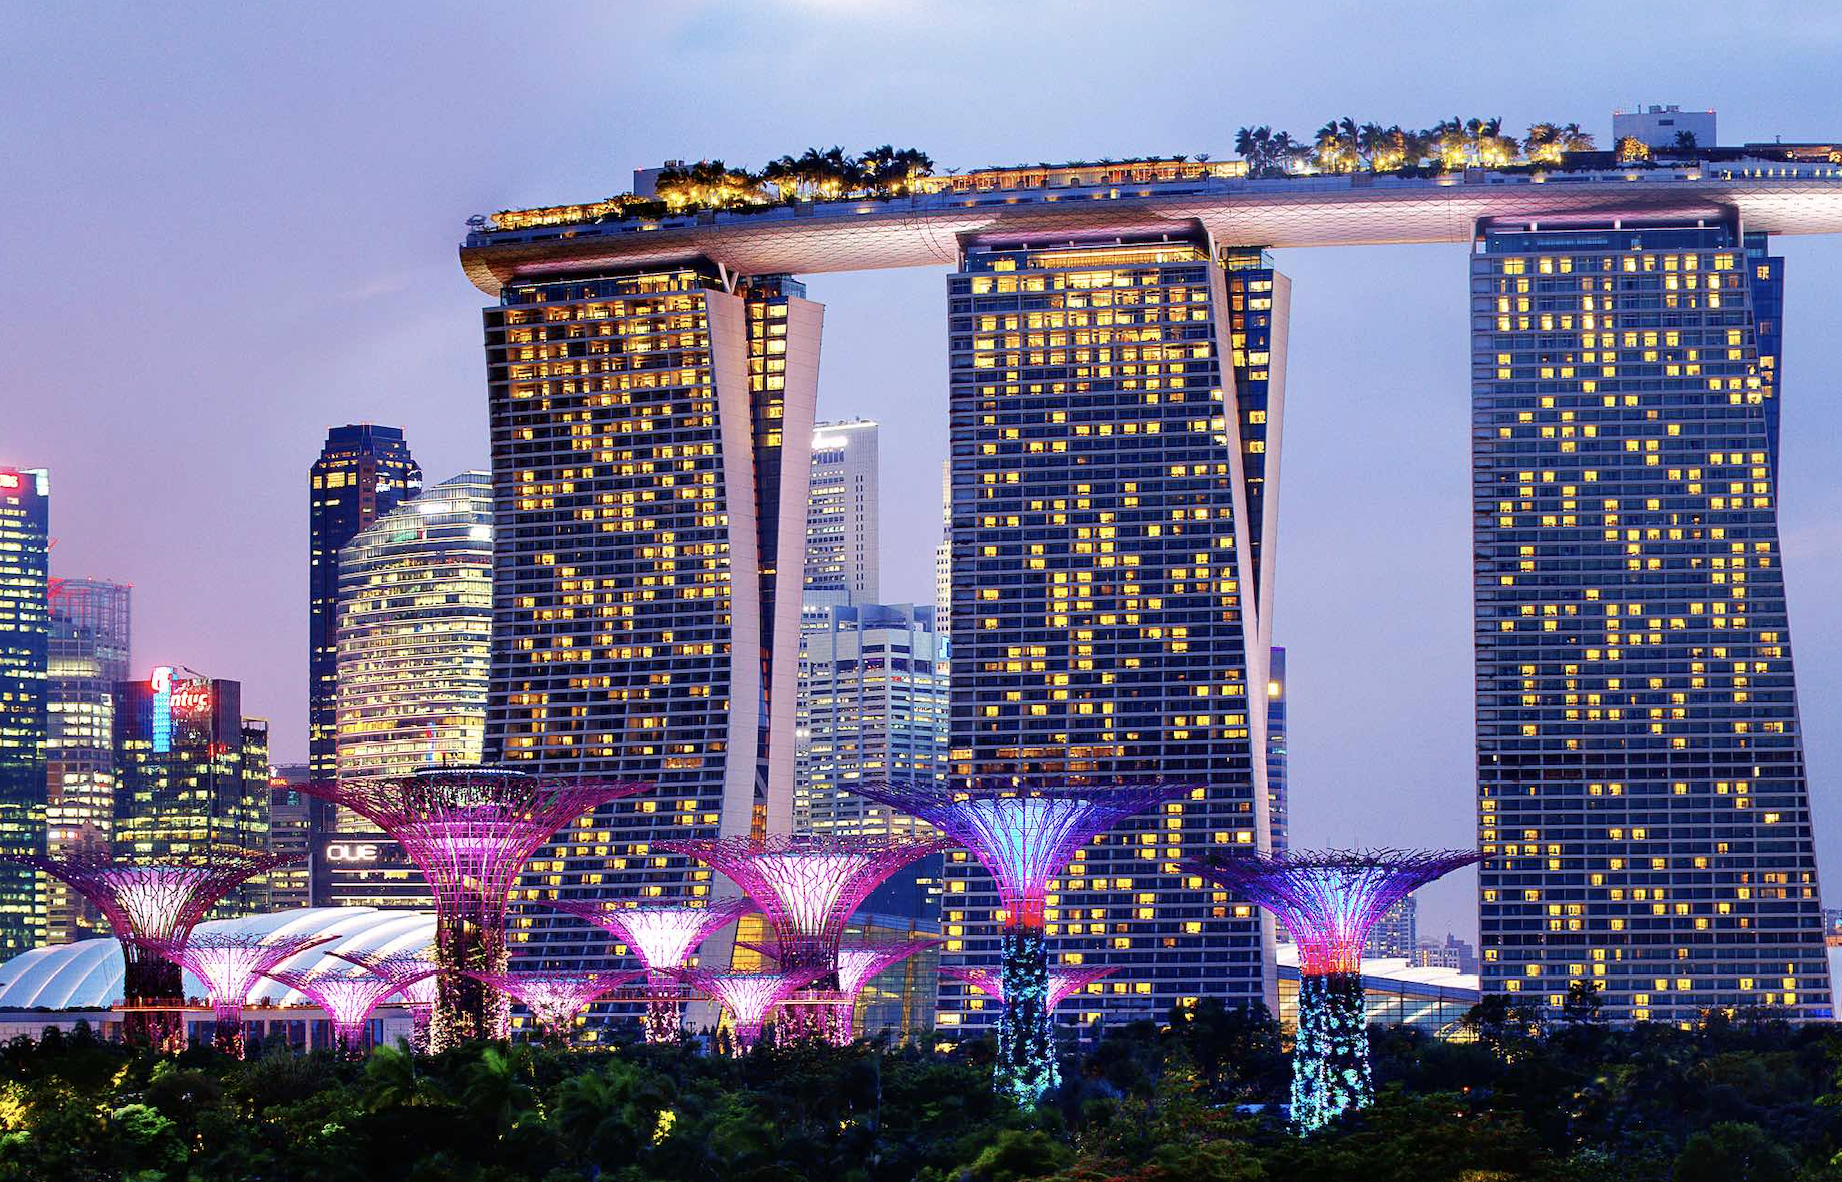 Marina Bay Sands and Gardens by The Bay. Photo courtesy: visitsingapore.com